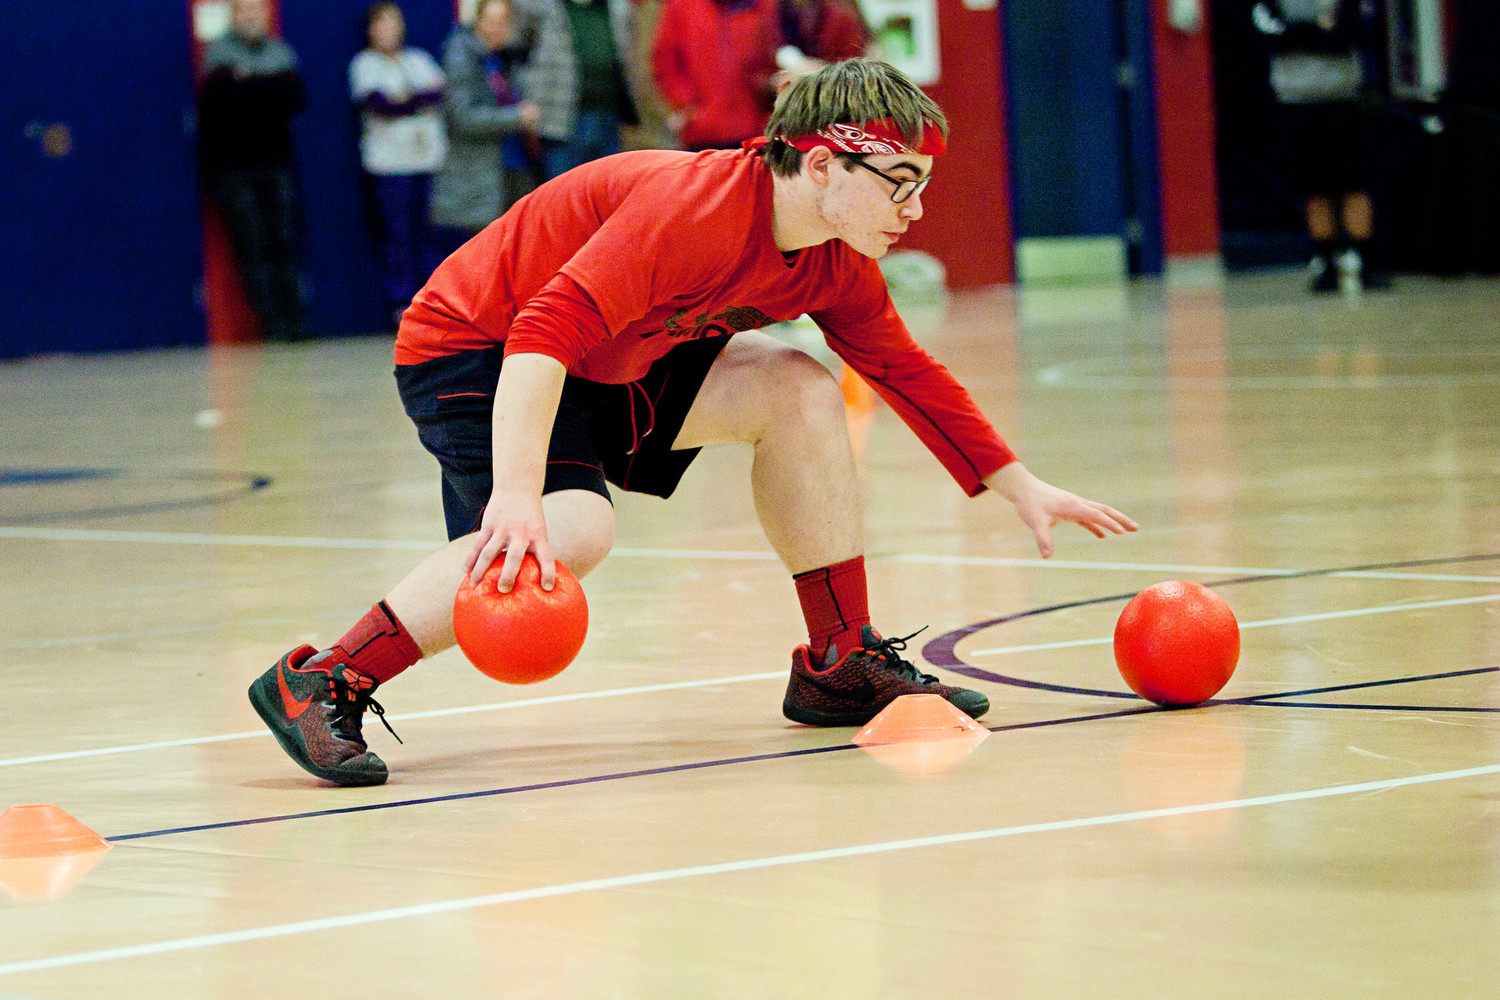 Sophomore Jacob Bloom, a member of the team Phillip Phlingers, gathers balls at the center line.